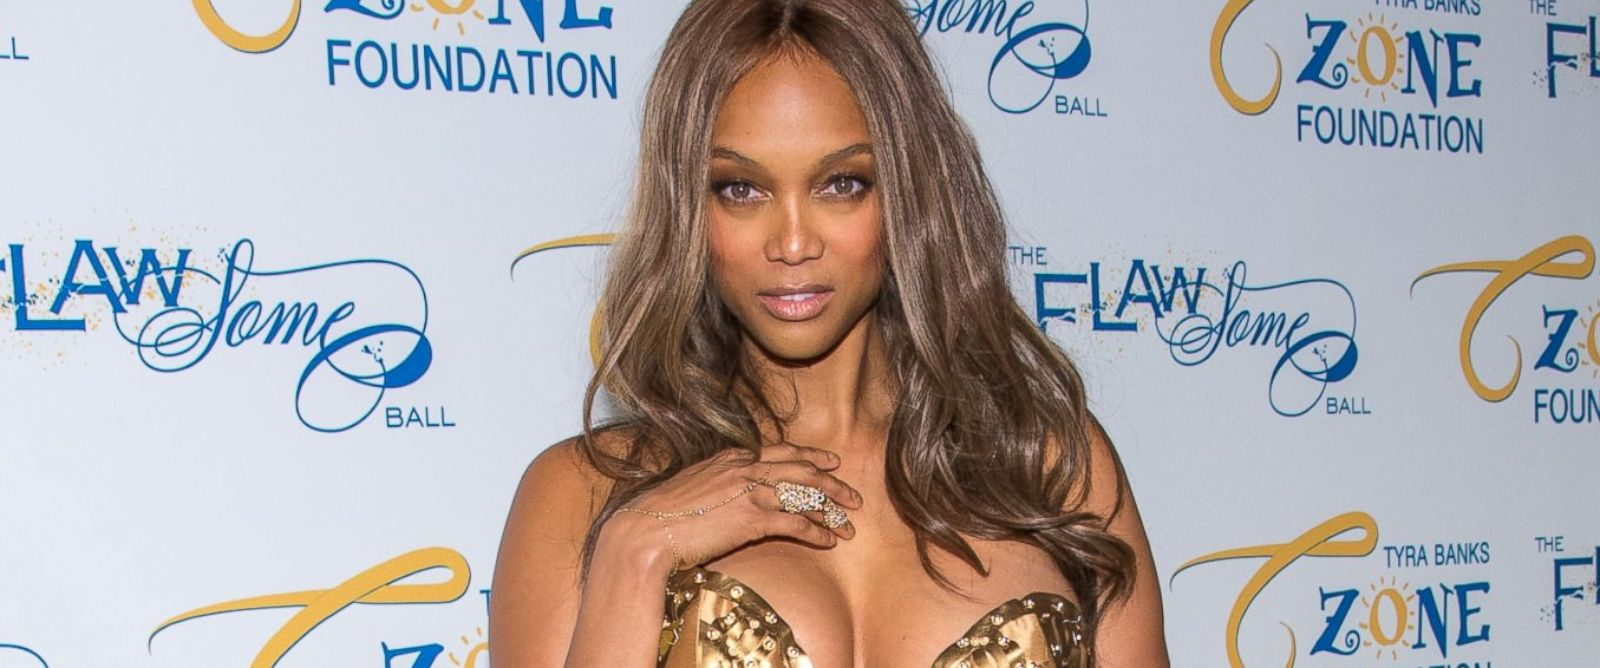 PHOTO: Tyra Banks attends Tyra Banks Flawsome Ball 2014 at Cipriani Wall Street on May 6, 2014 in New York City.